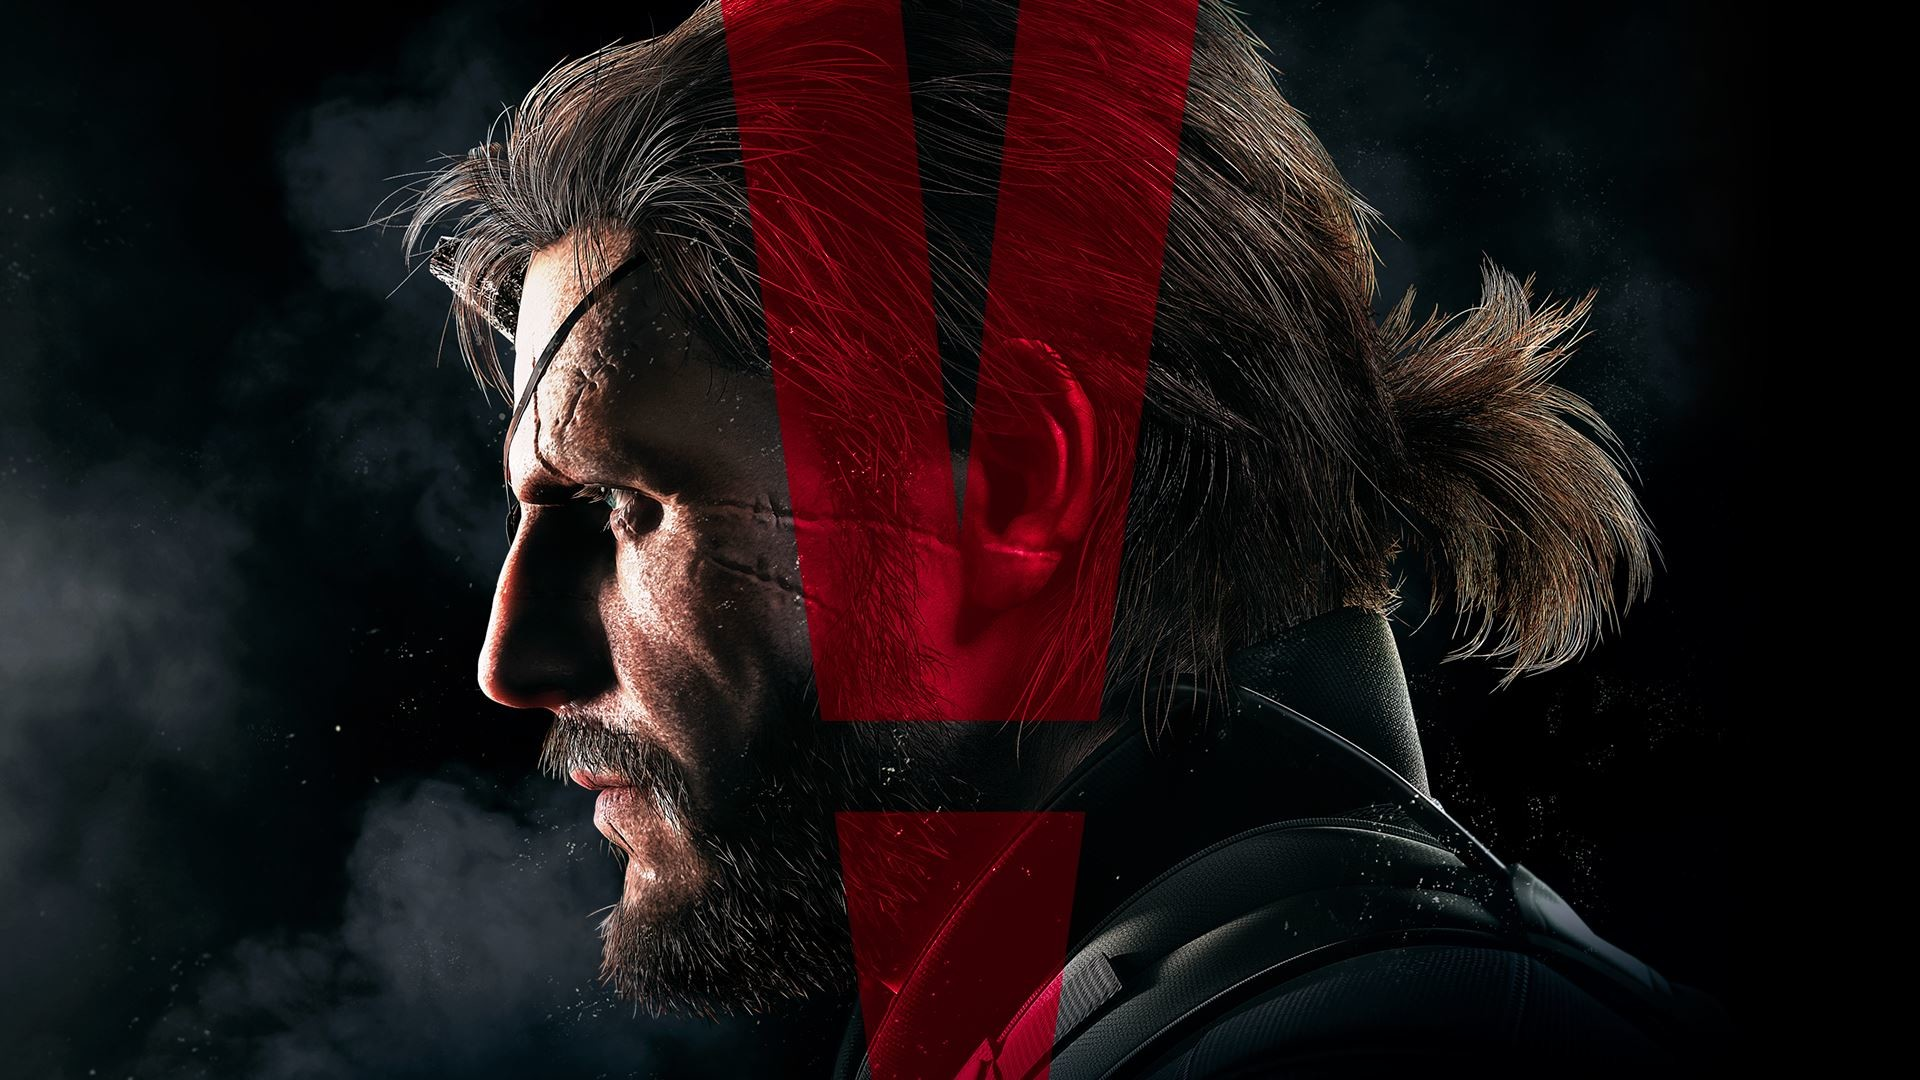 25 Big Boss (Metal Gear Solid) HD Wallpapers   Backgrounds – Wallpaper Abyss